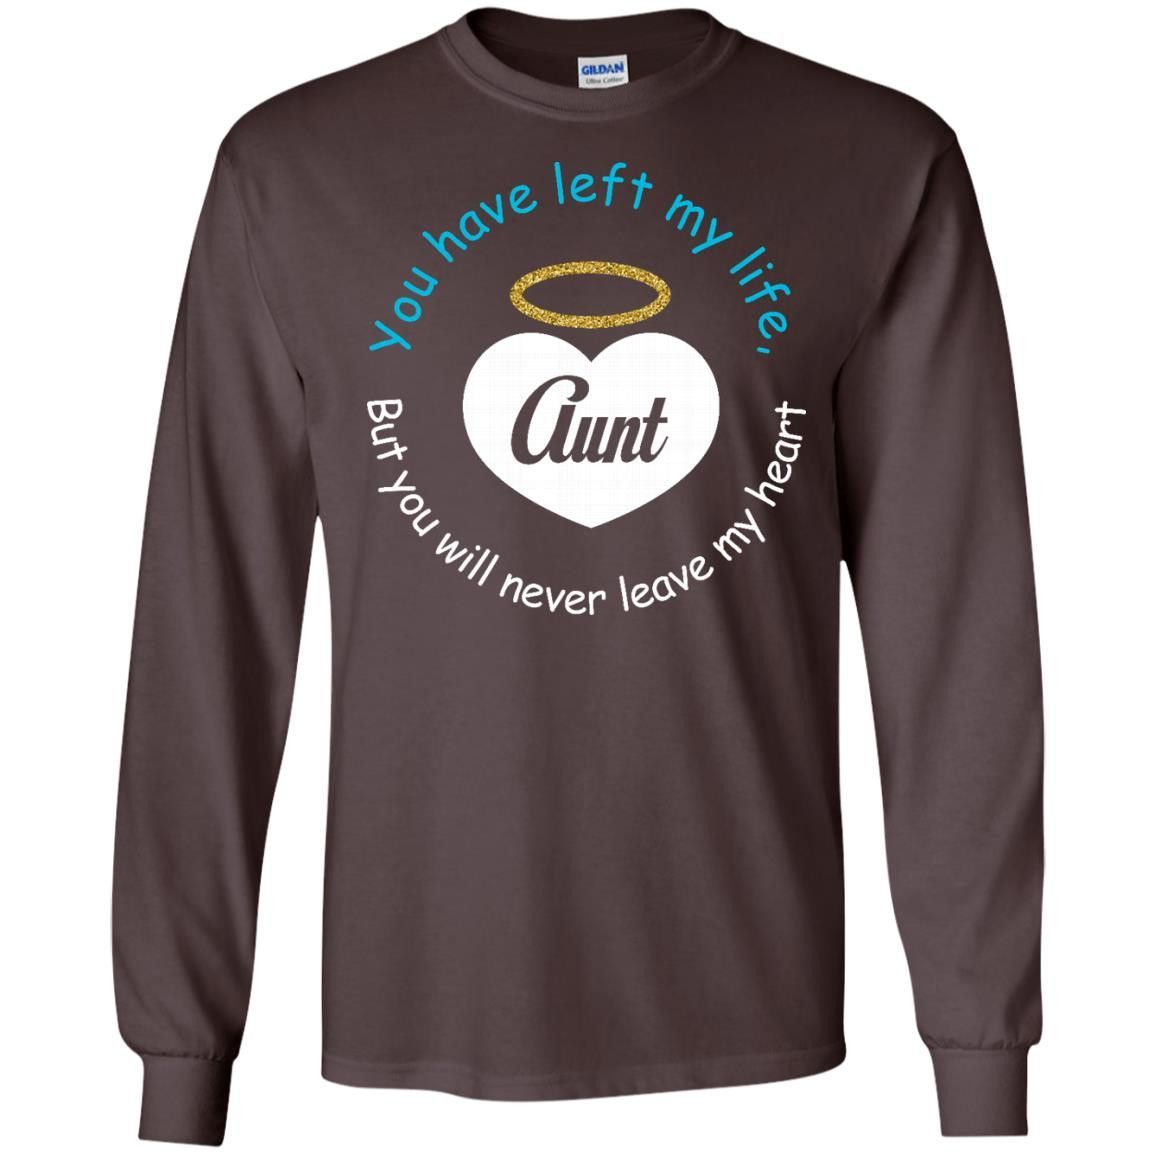 You have left my life aunt LS Ultra Cotton Tshirt